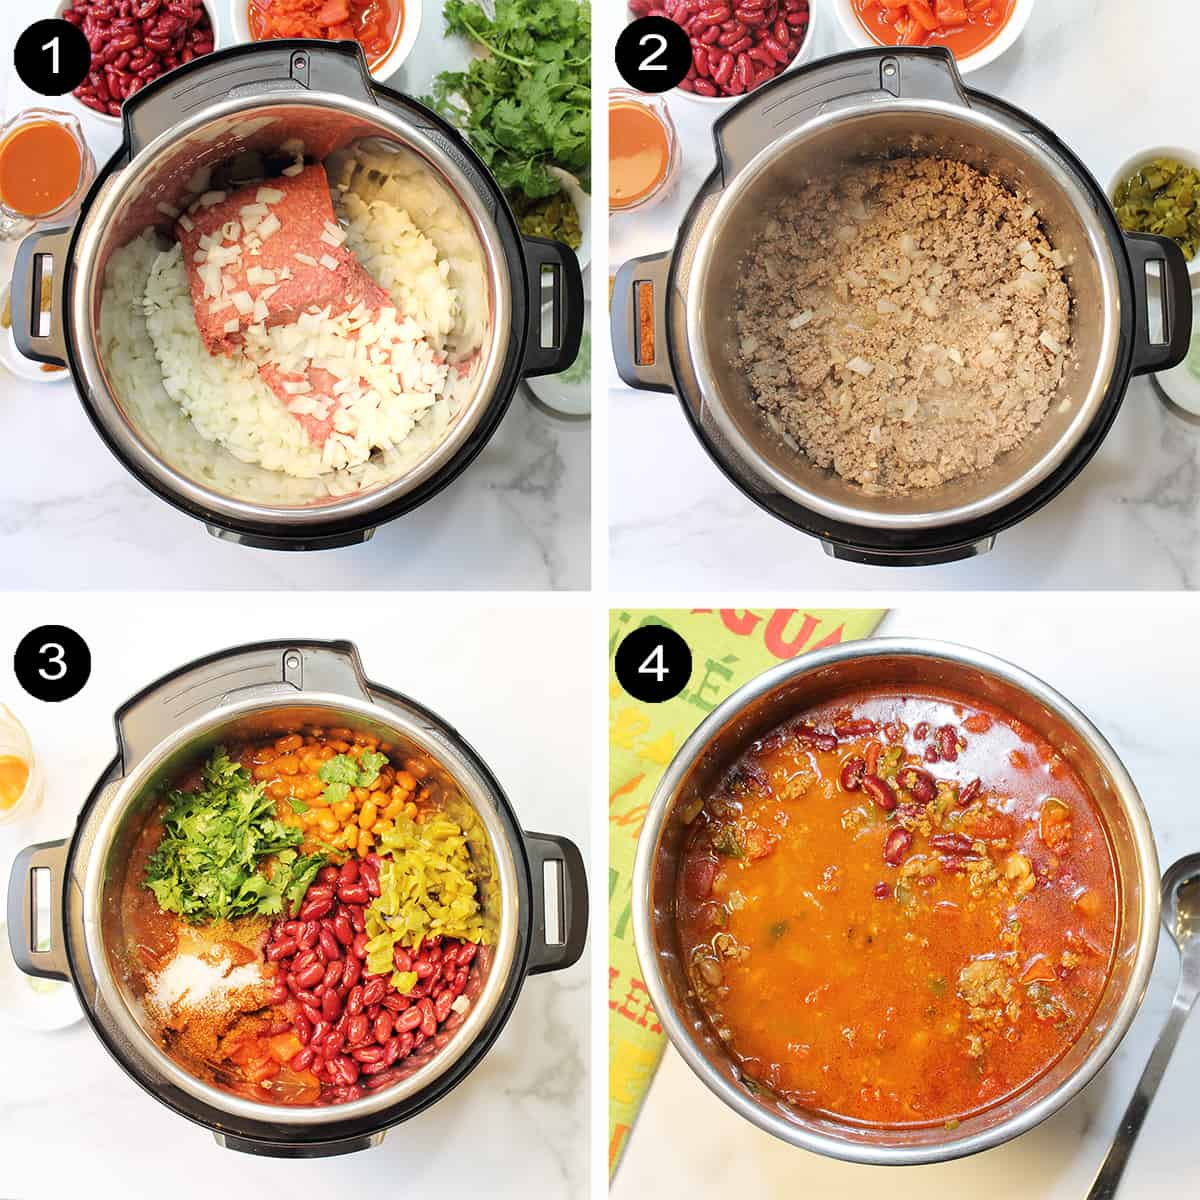 Slow Cooker Taco Chili prep steps 1-4.